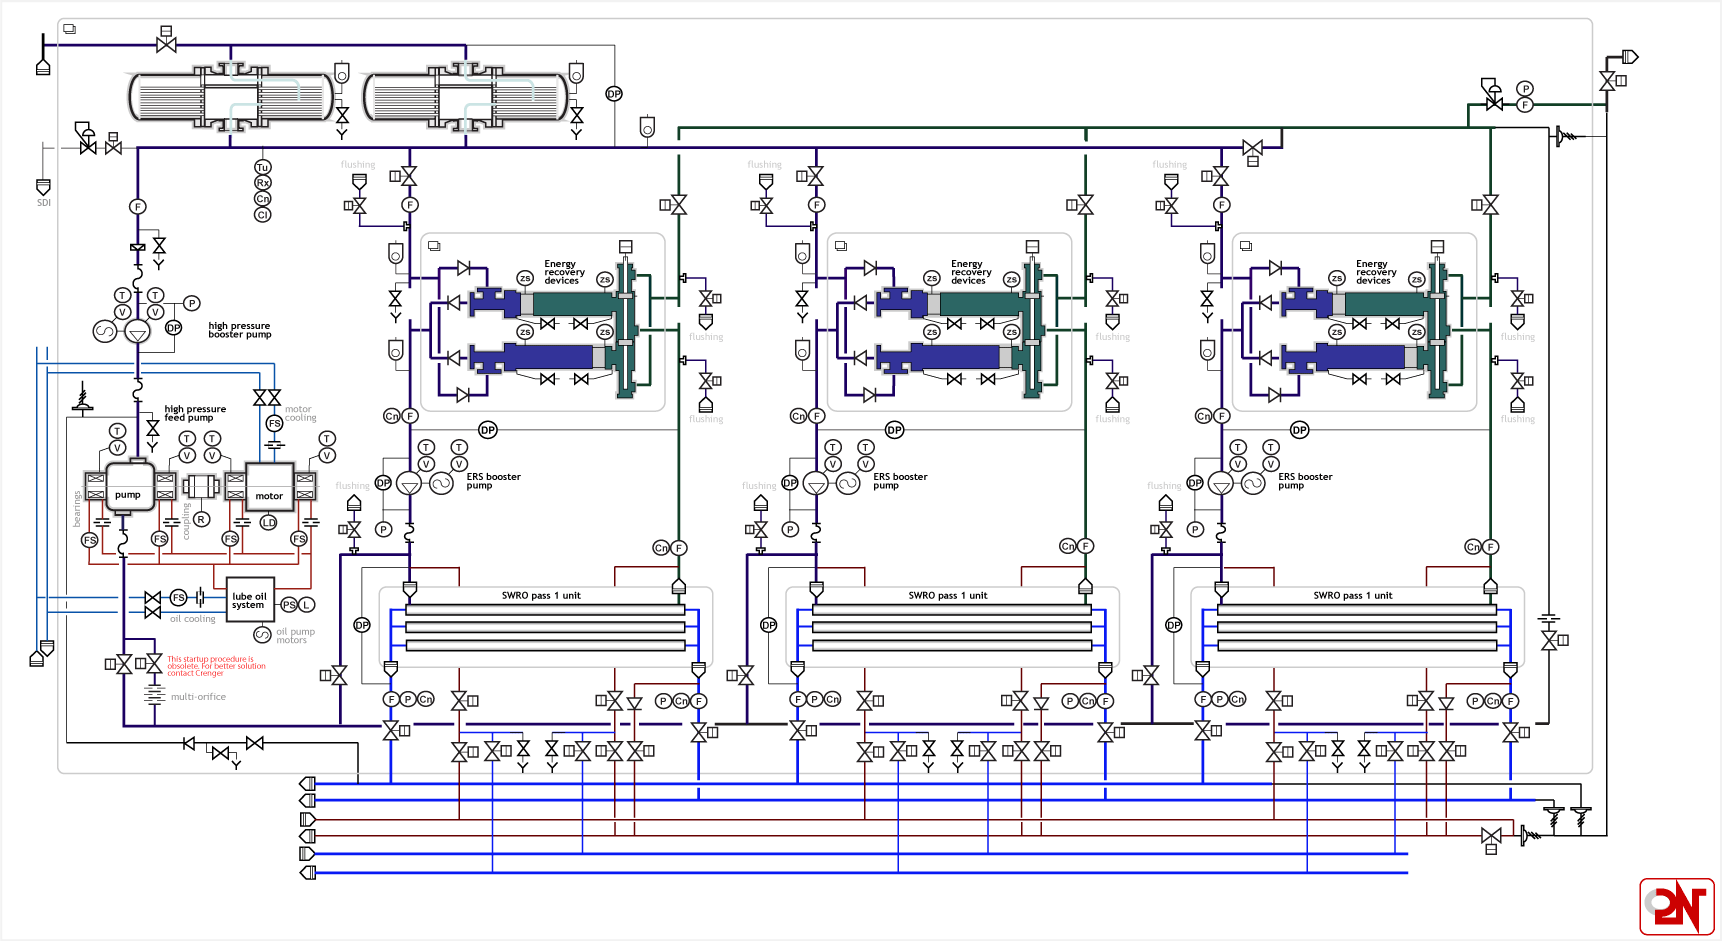 S2800 Project 250000 M3 Day Piping Layout Drawing Comparing To The Pressure Center Configuration Previous Has Much Higher Flexibility In Operation Less Expensive High By About